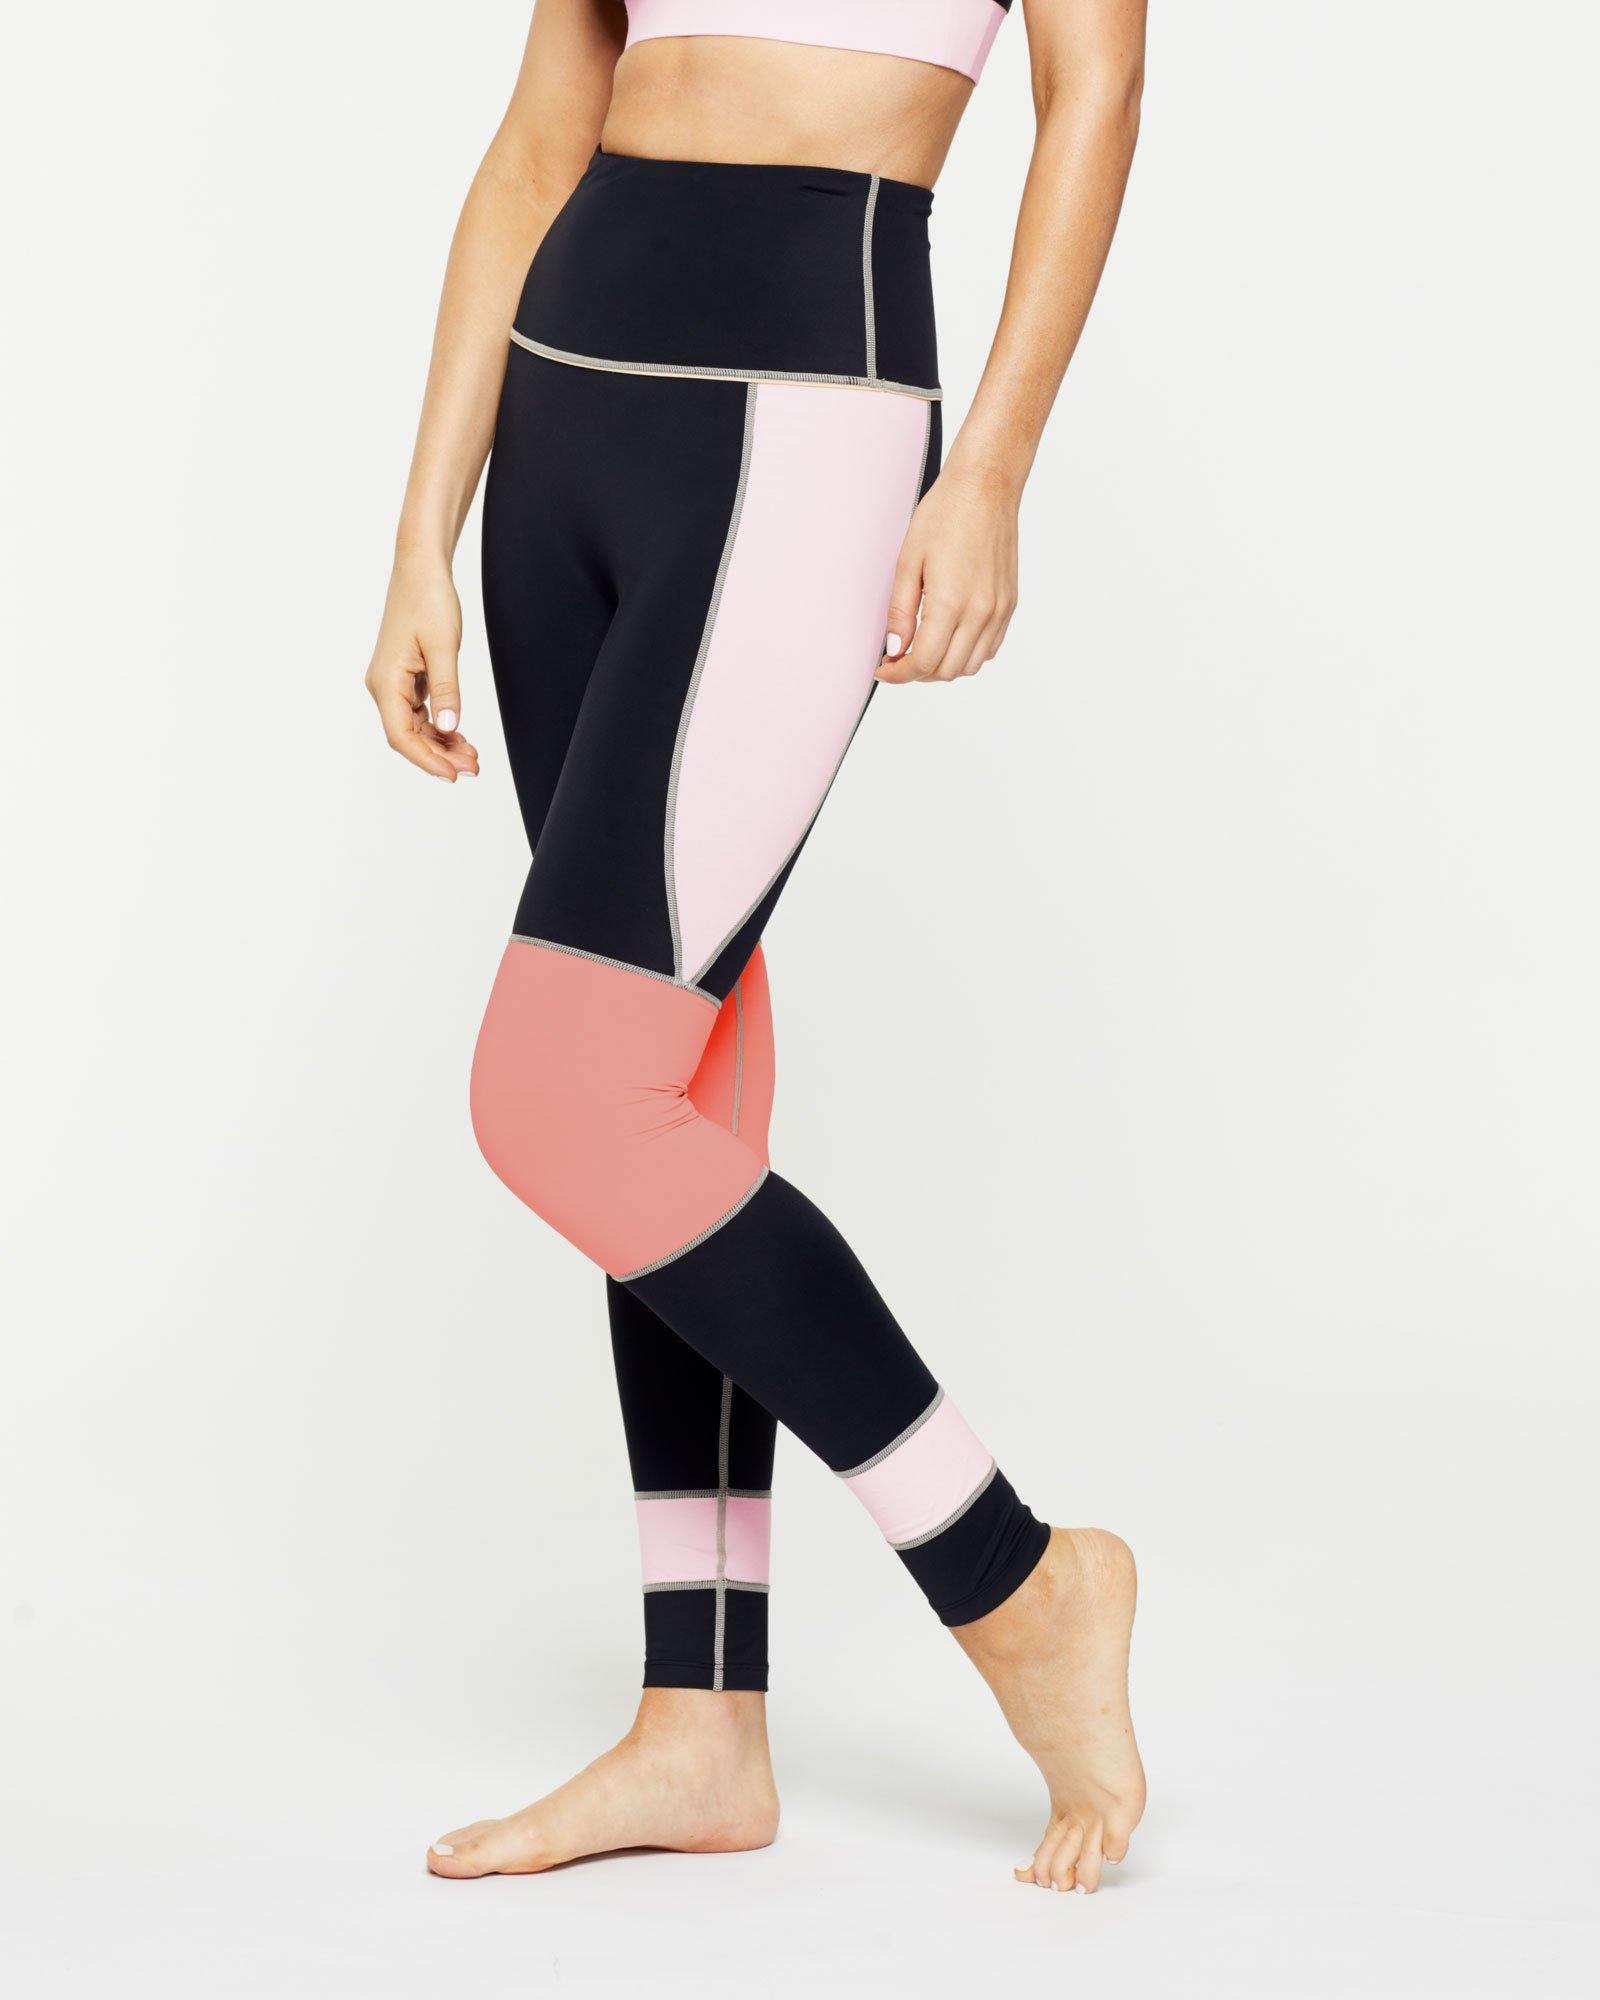 Warrior GRACILIS FULL LENGTH high waist legging with CONTRAST PANELS, SIDE VIEW